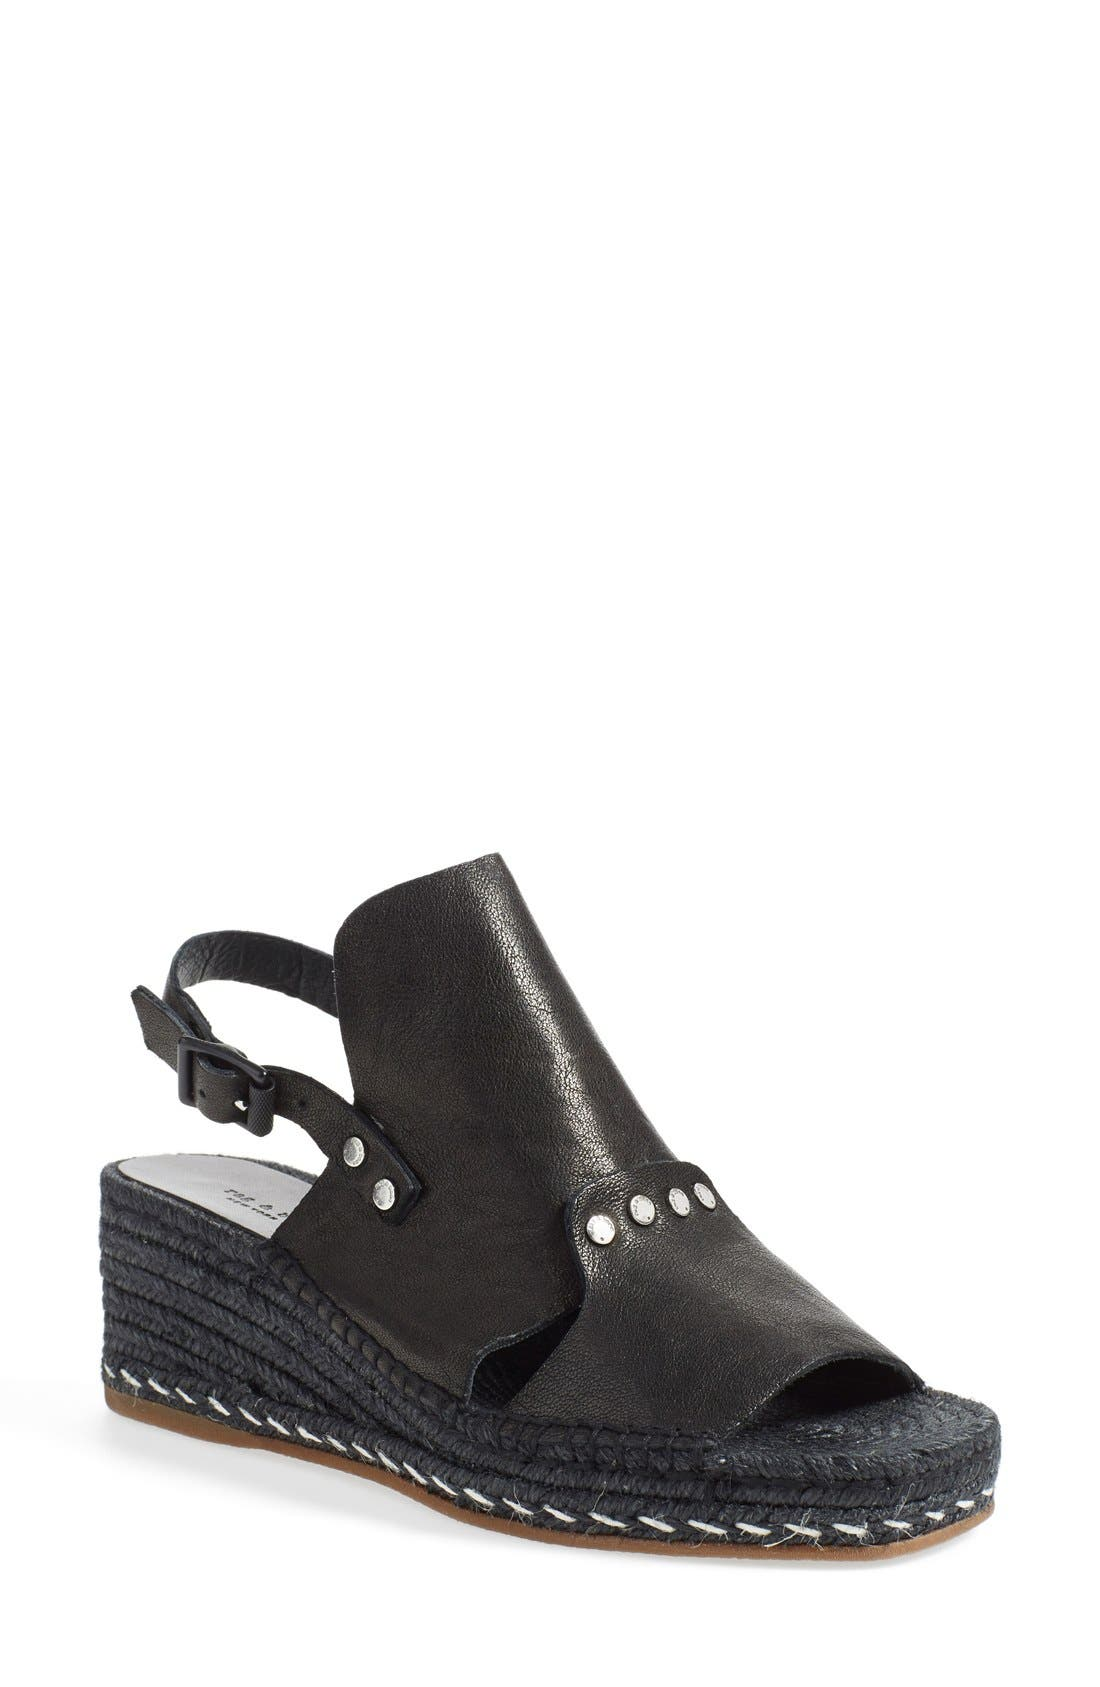 'Sayre II' Espadrille Wedge Sandal,                         Main,                         color, Black